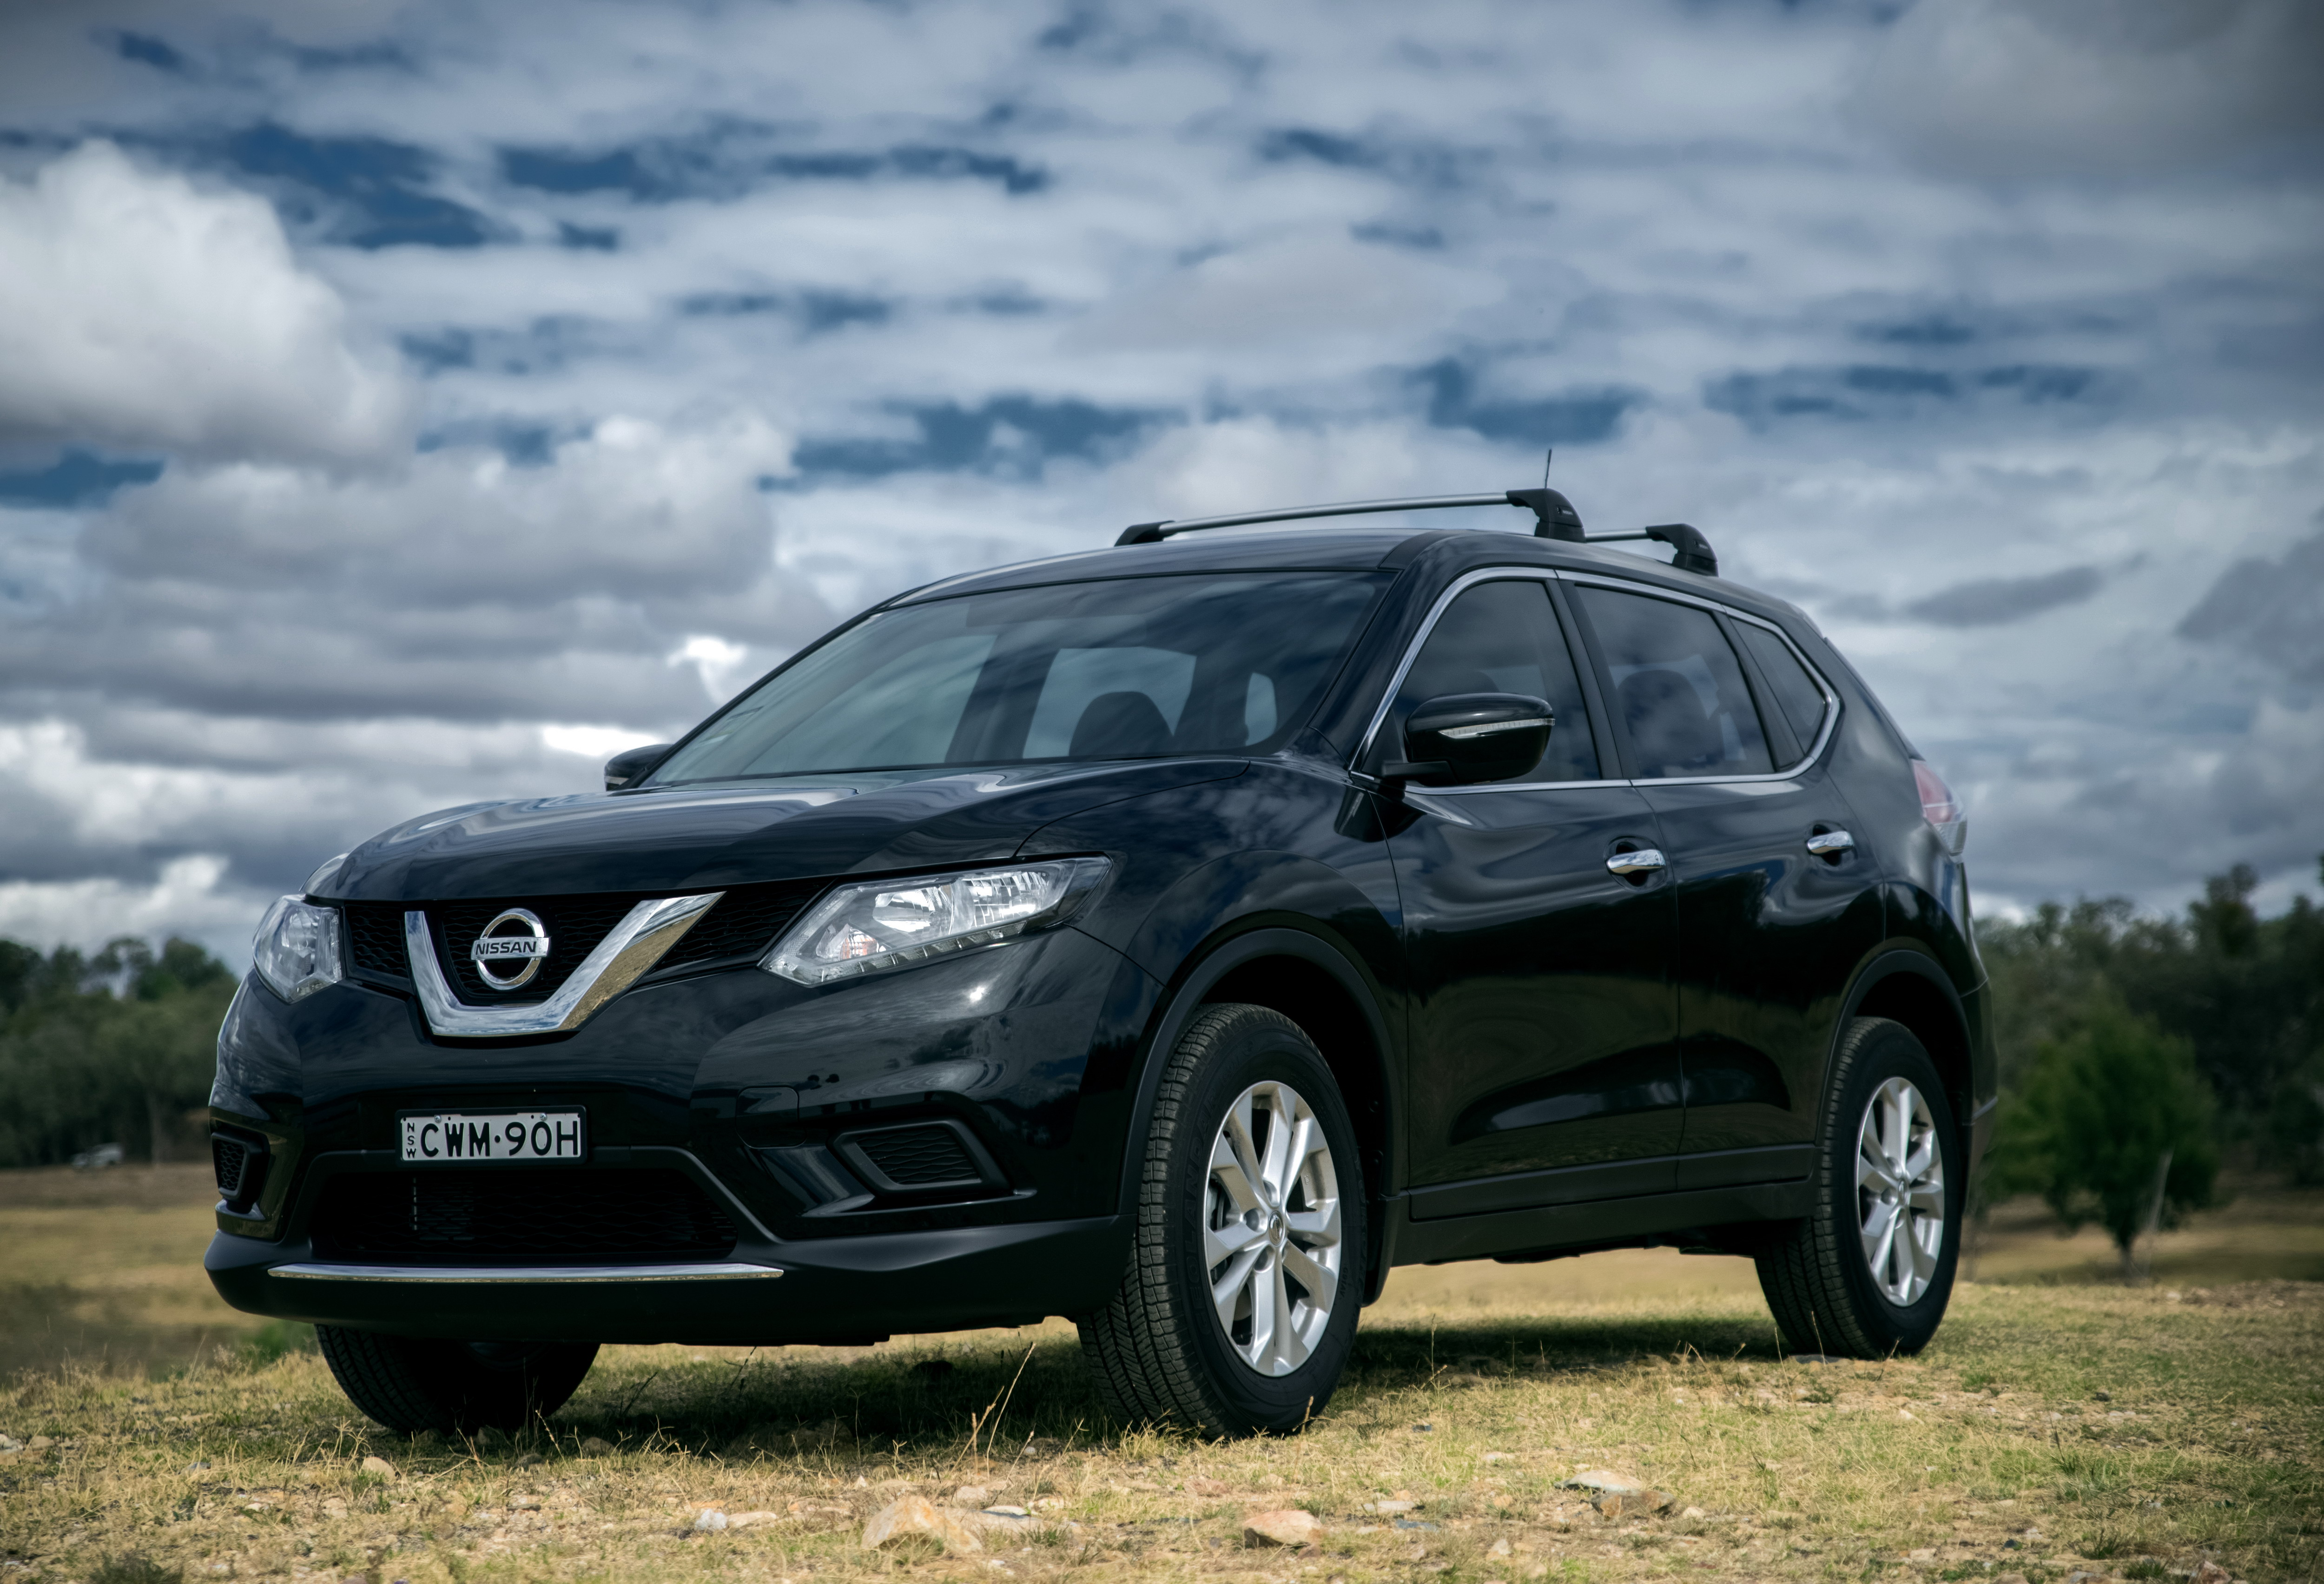 Picture of Eithan's 2014 Nissan Xtrail